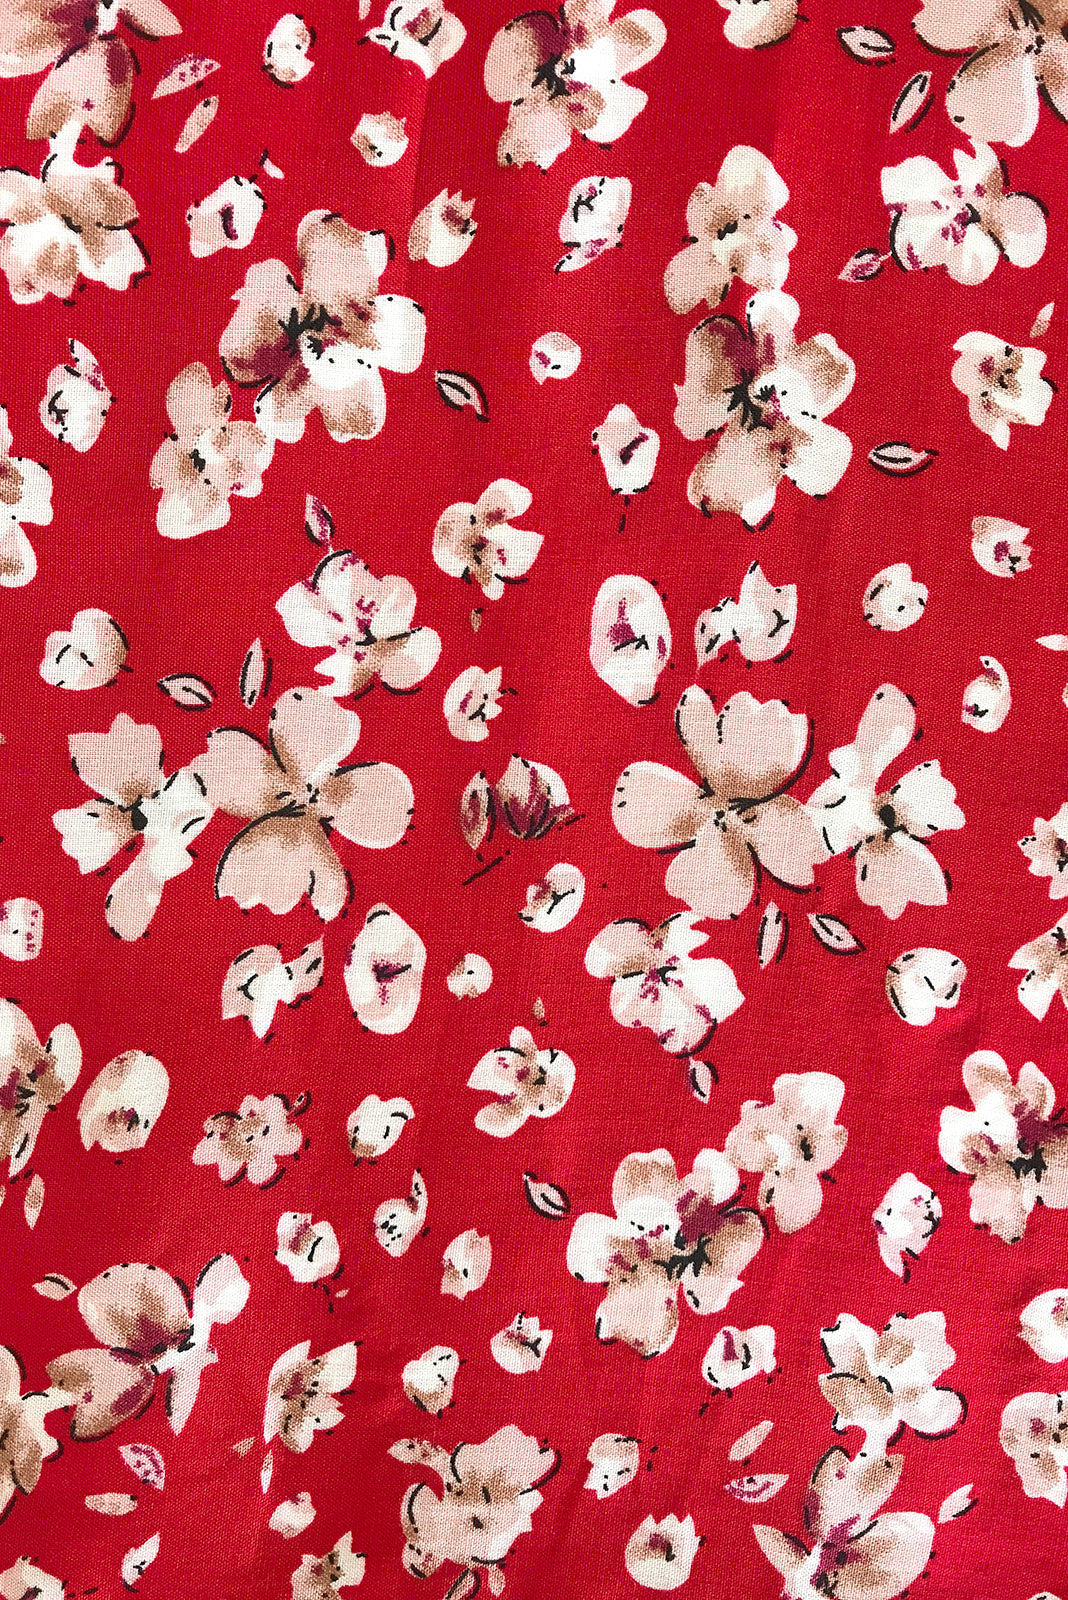 Fabric Swatch of Viva Ruby Red Dress featuring 100% rayon in red floral print.